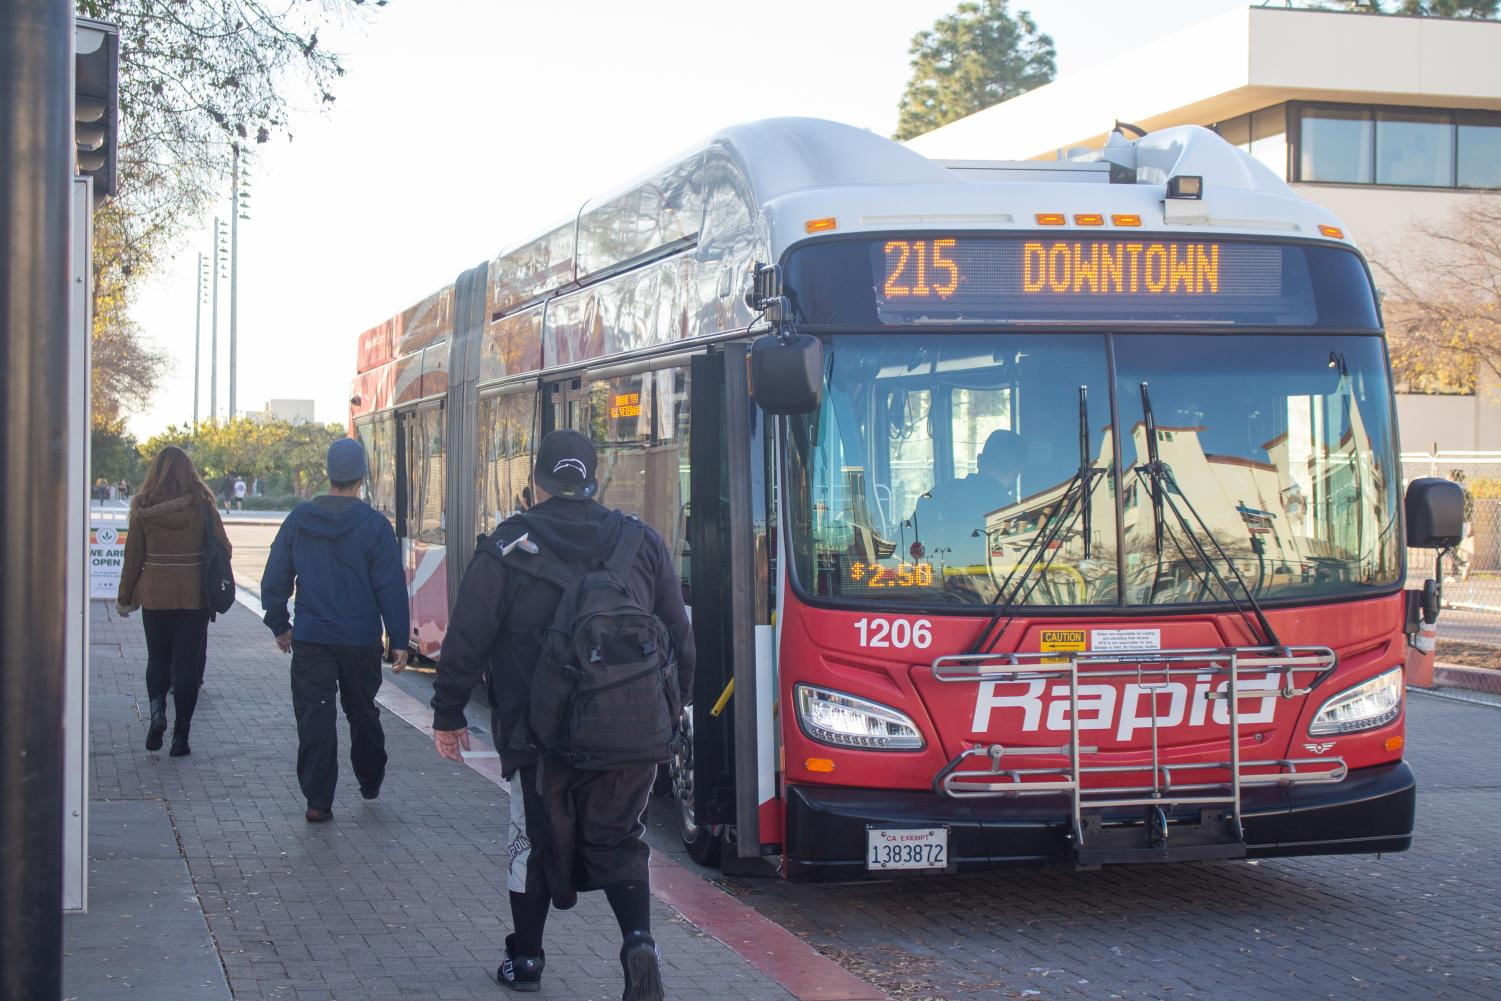 Rapid 215 currently connects SDSU and downtown using El Cajon Boulevard.